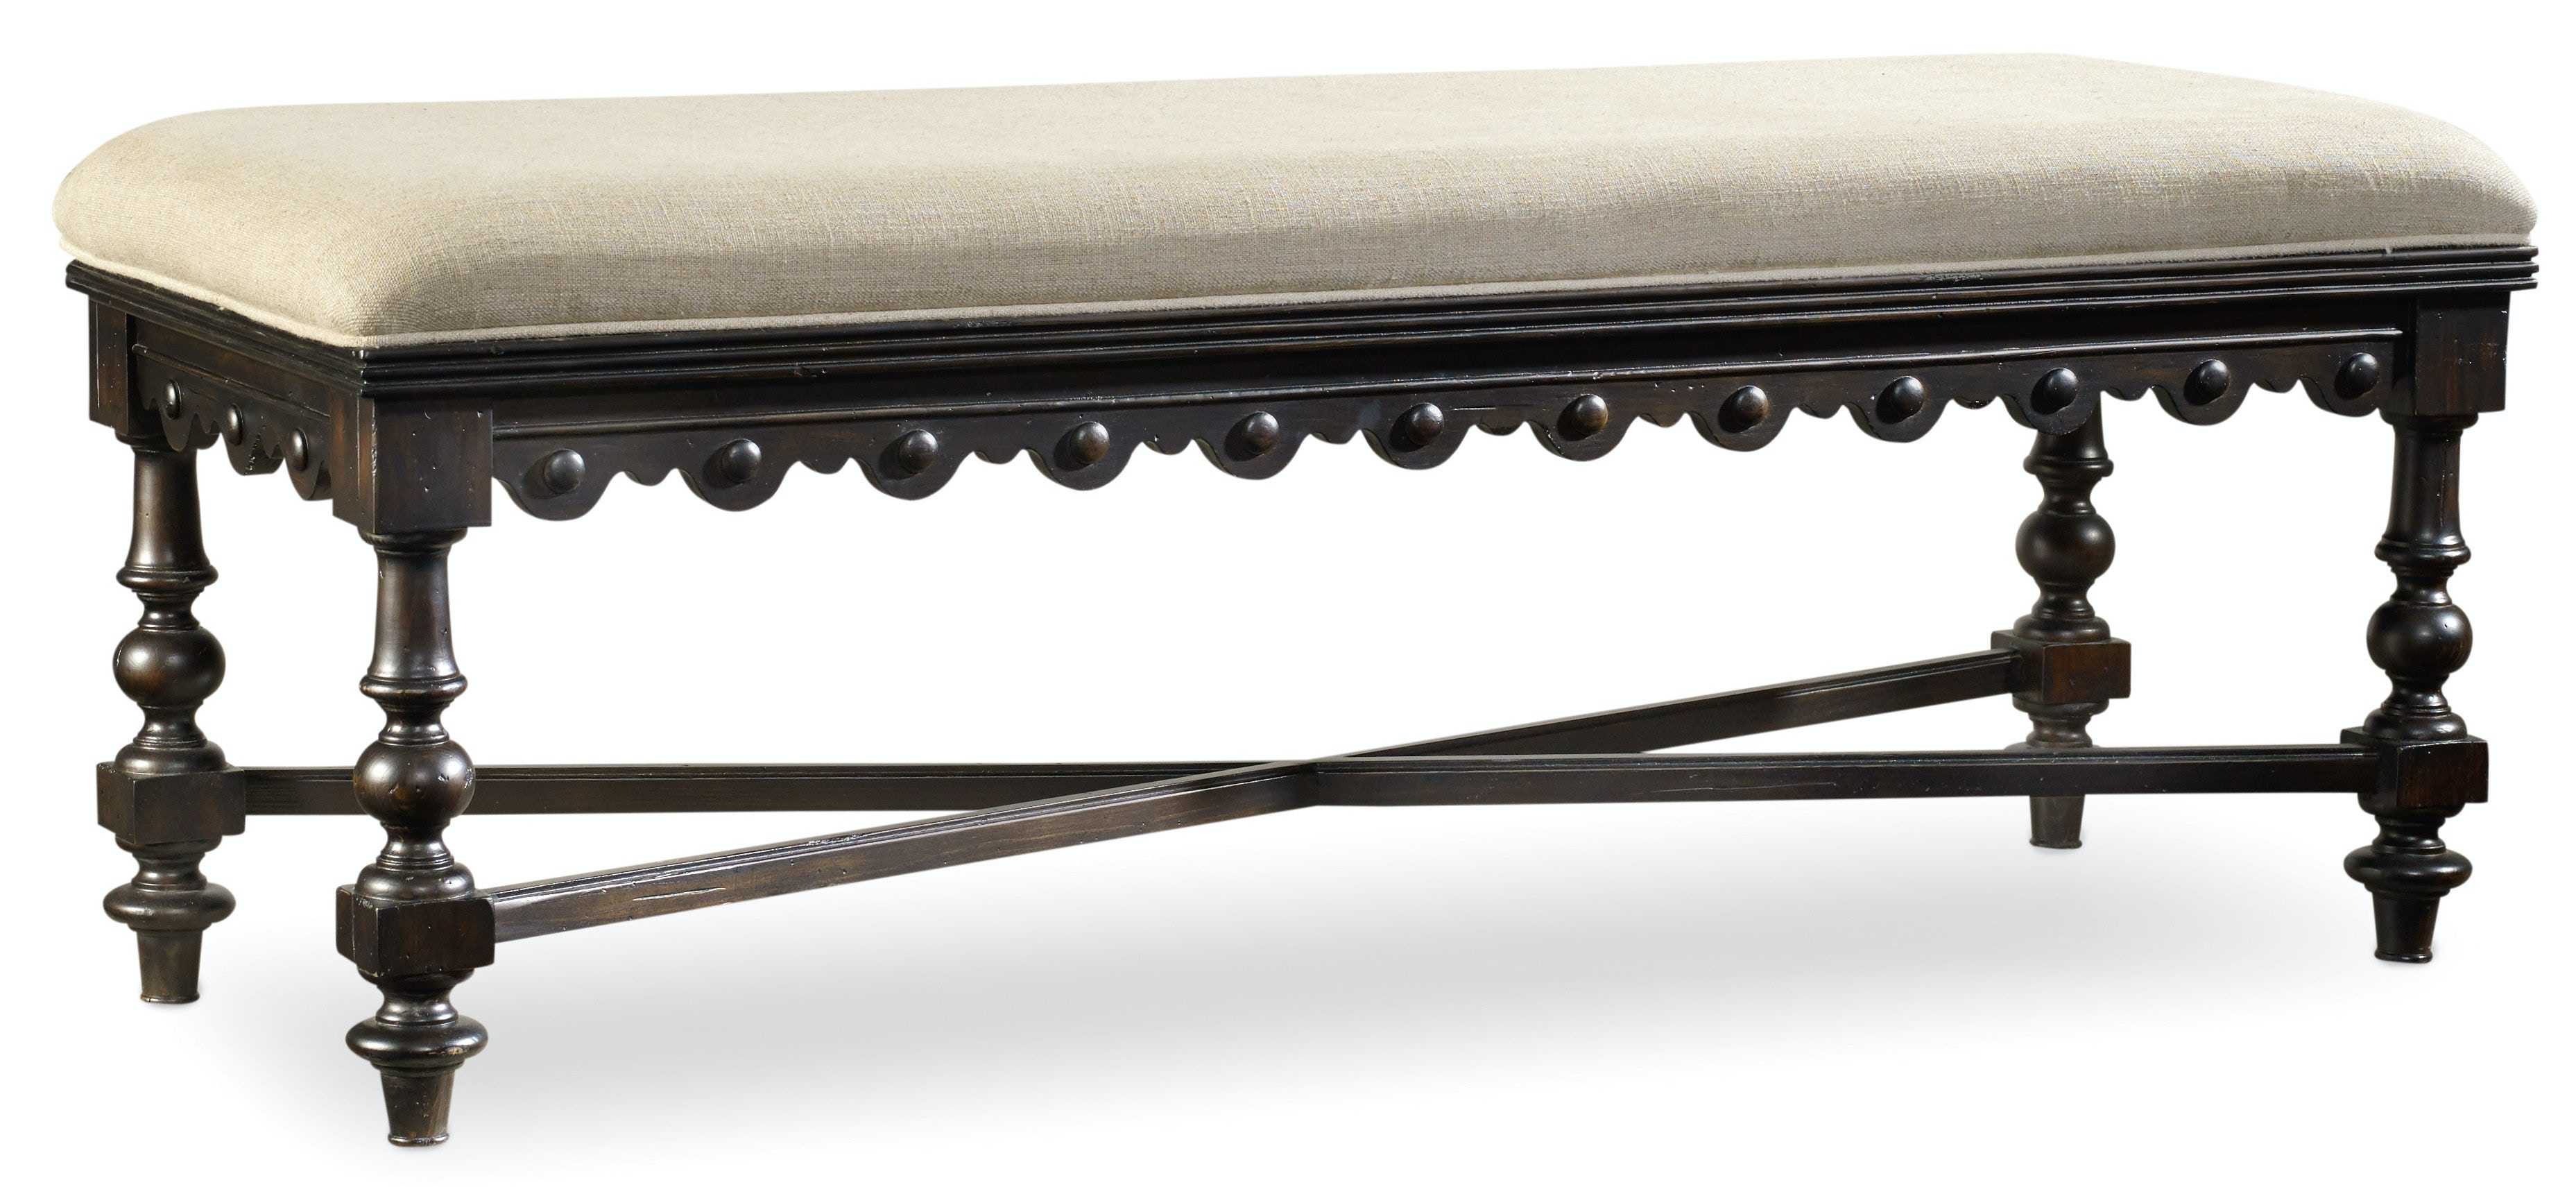 Great Hooker Furniture Treviso Bed Bench 5374 90019